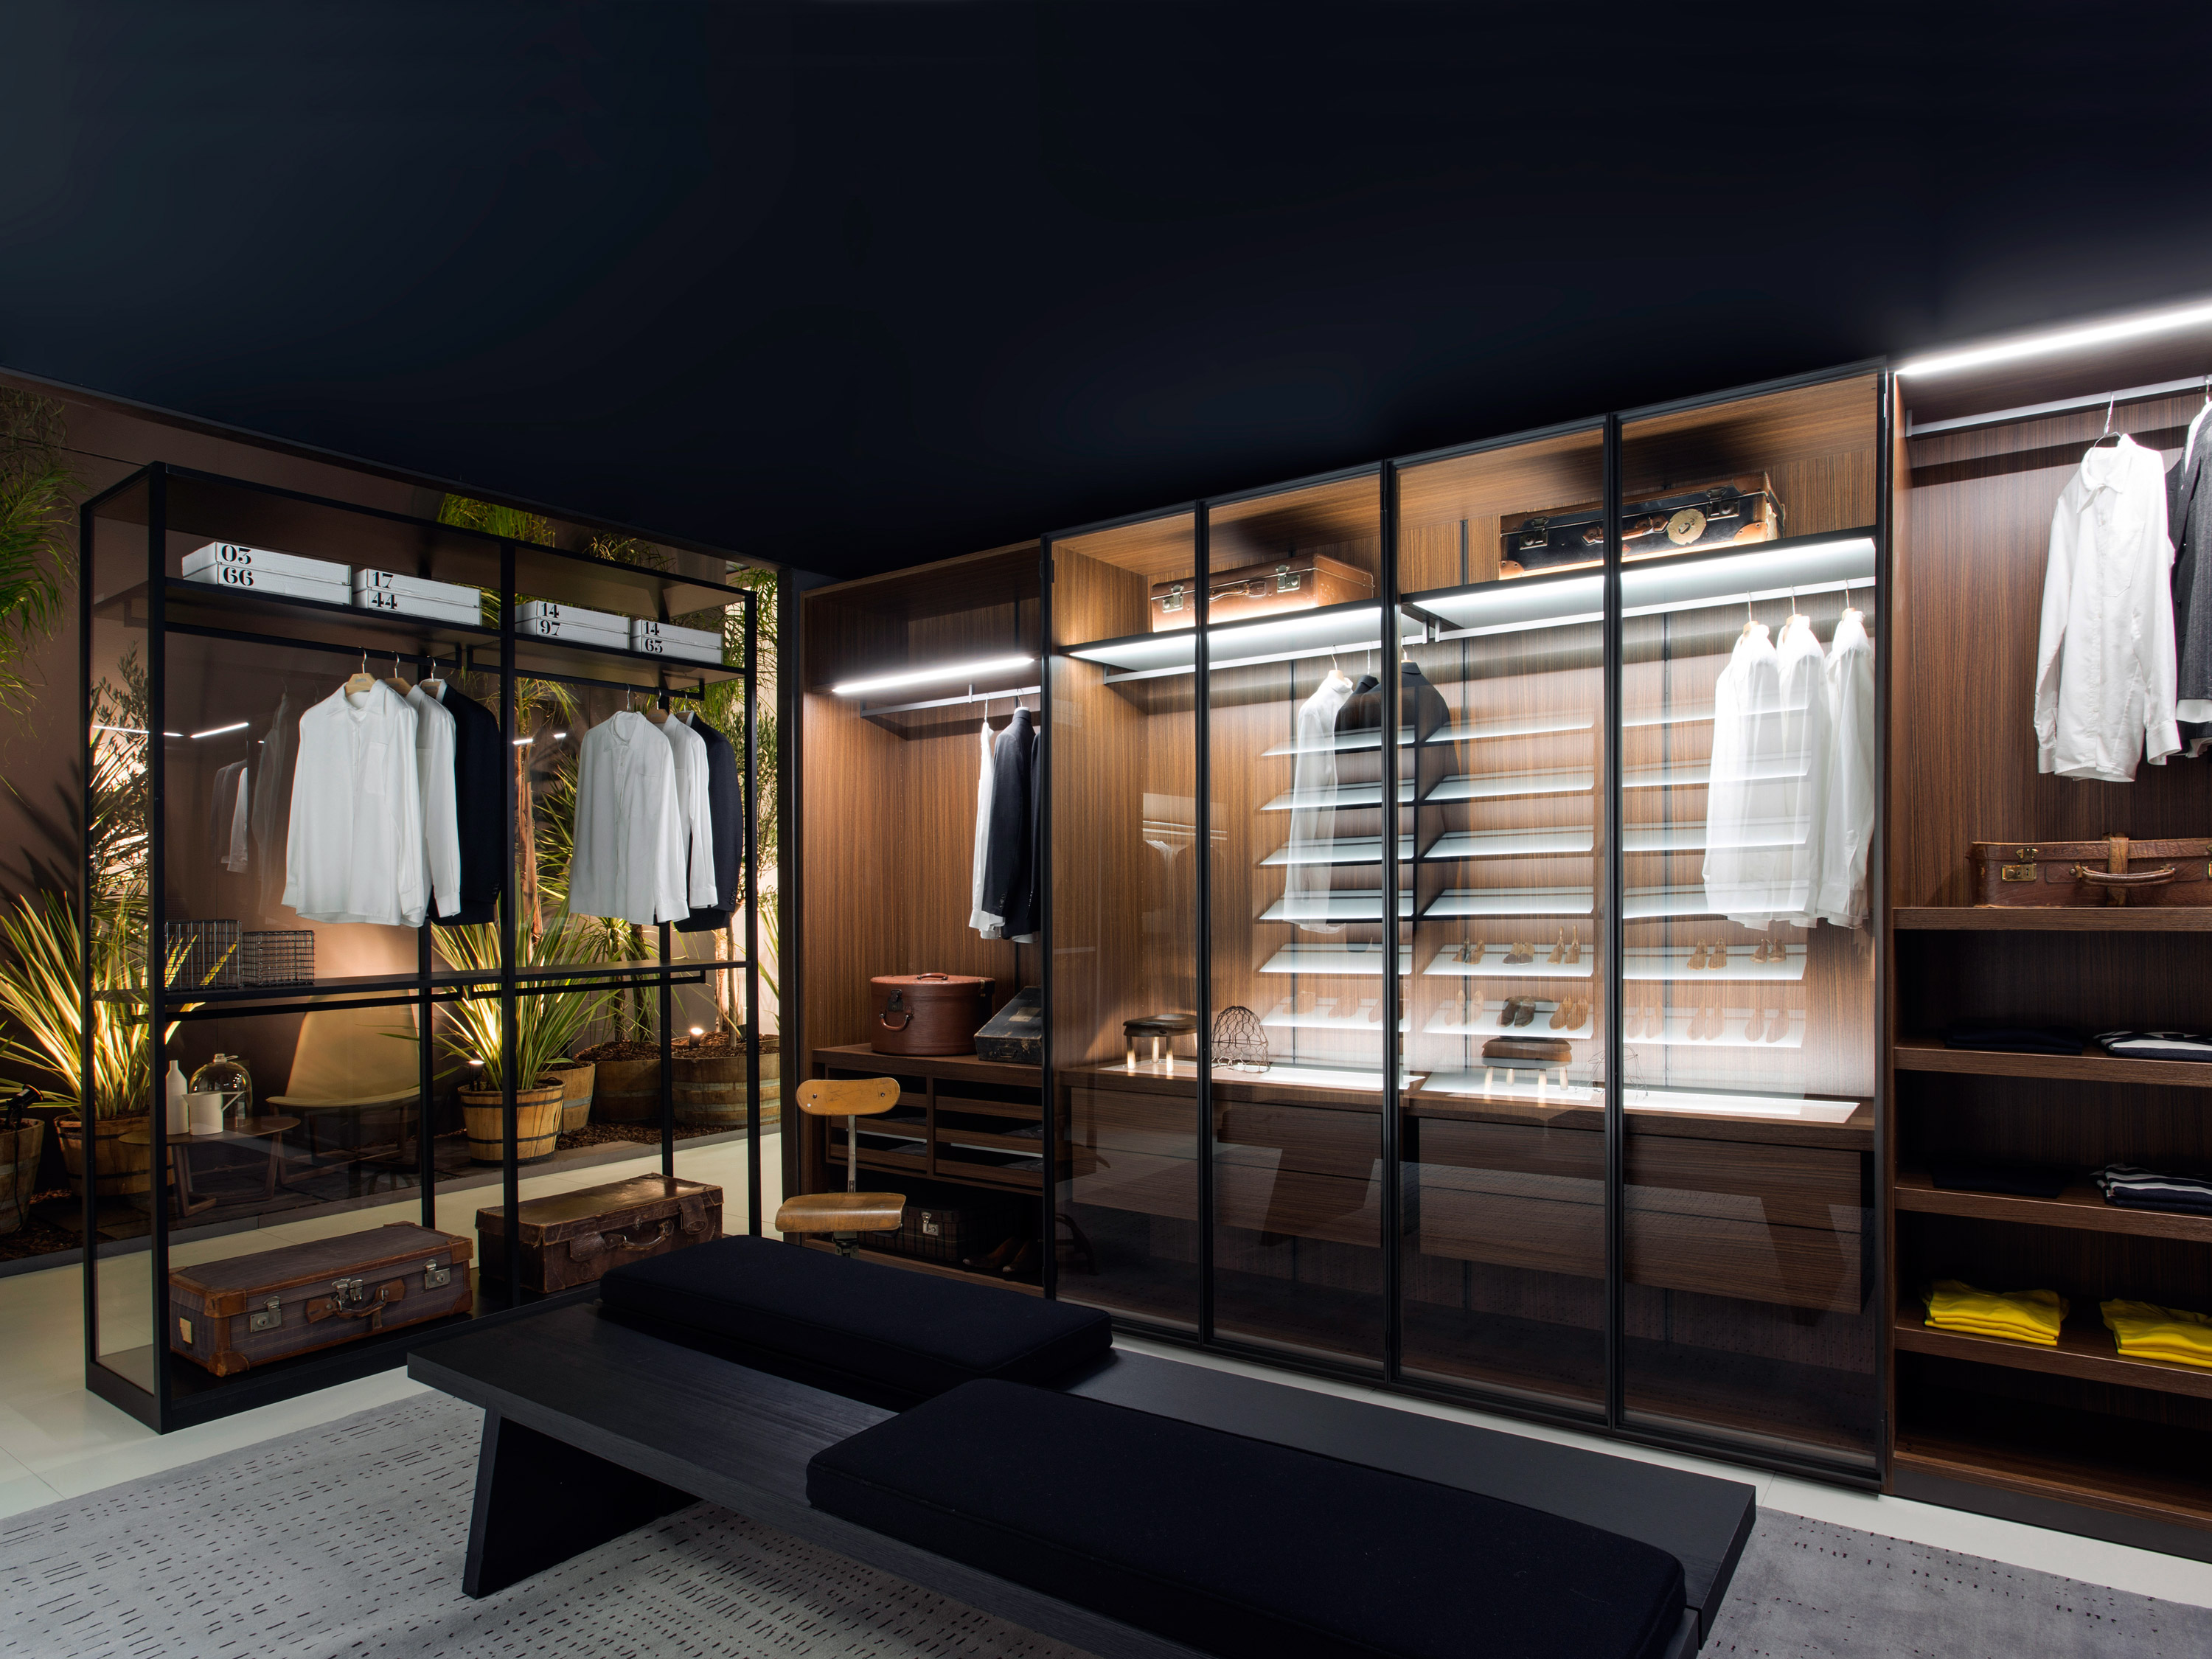 Spa Room Design Porro Spa Products Systems Dressing Room